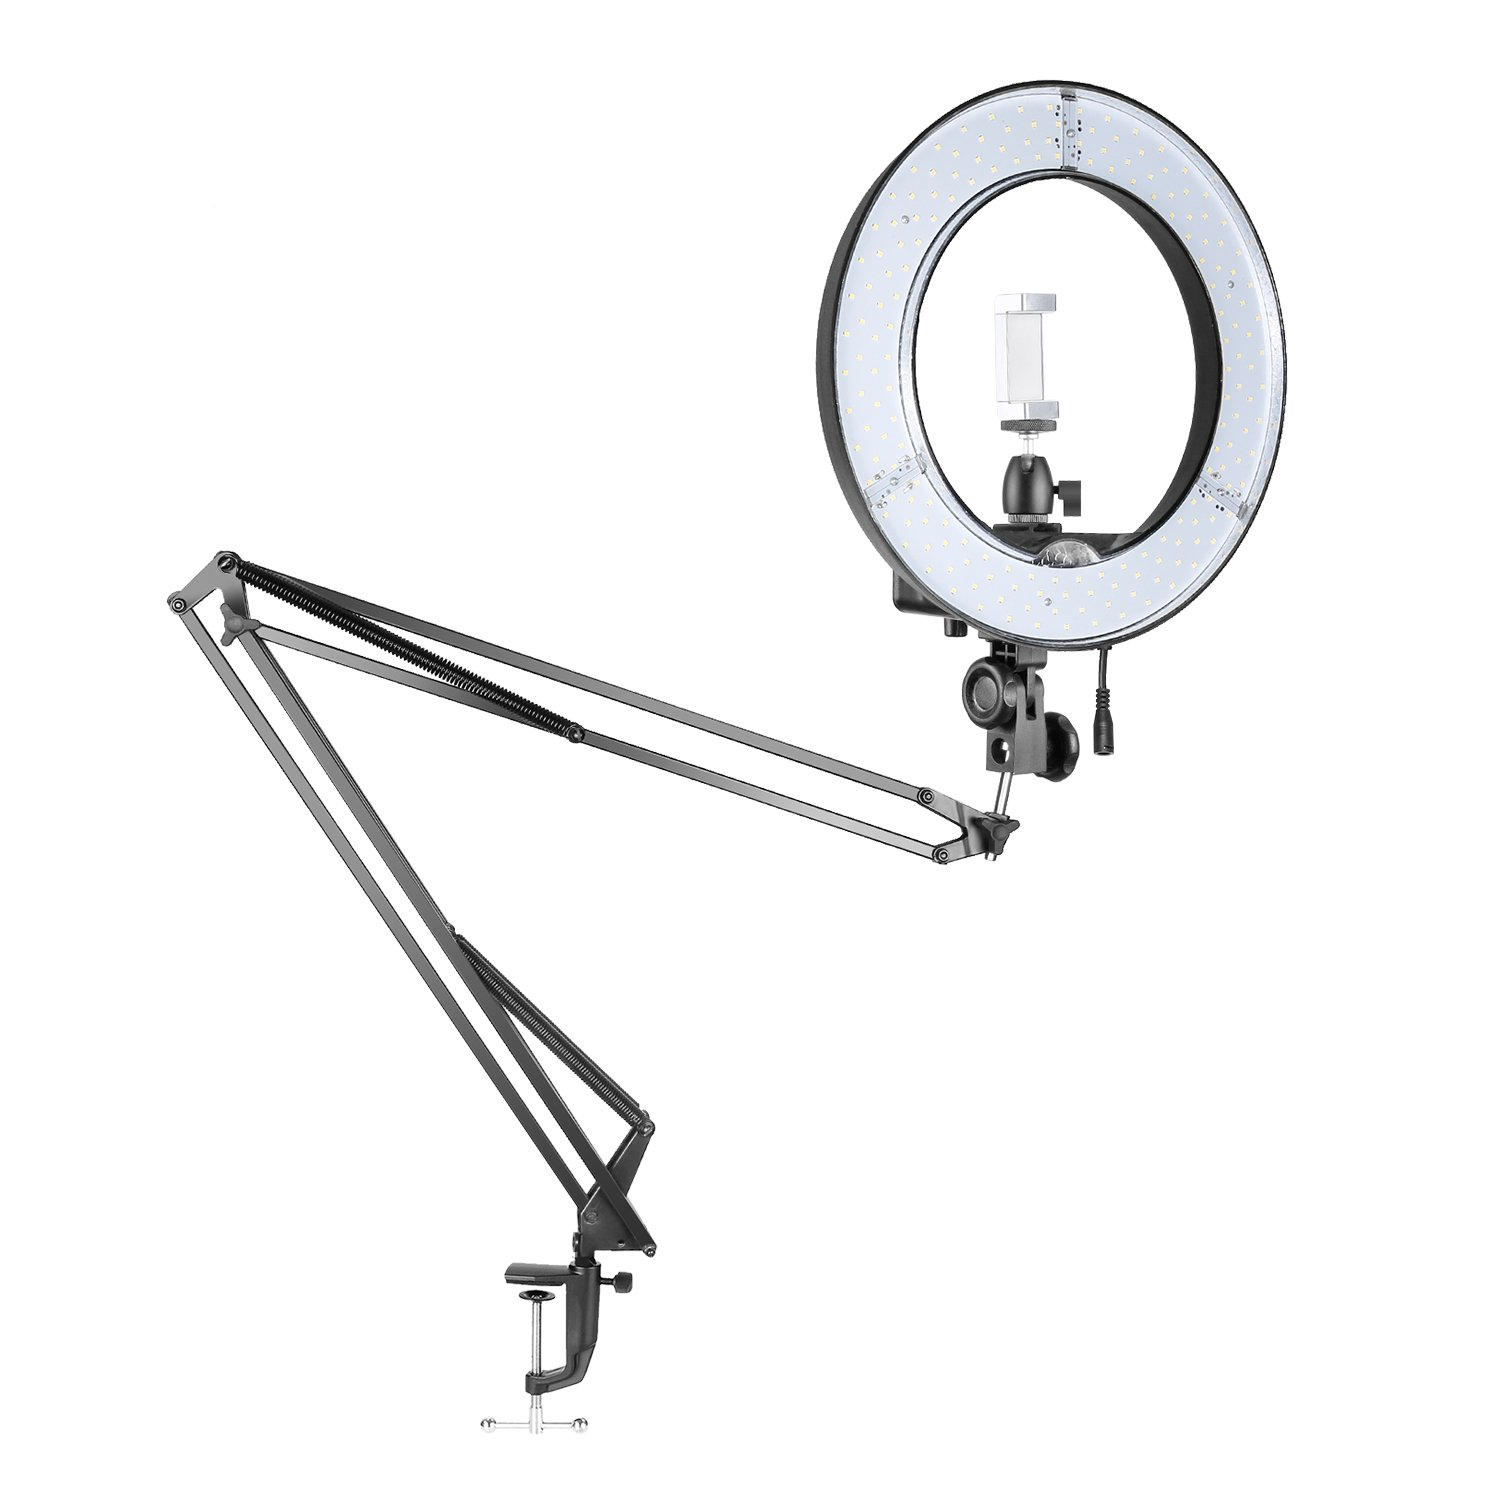 Neewer Table Top 14-inch Outer Dimmable LED Ring Light Lighting Kit for Smartphone/Camera Studio YouTube Make up Video Shooting with Rotatable Arm Stand, Diffuser, Phone Holder, Ball Head (US/EU Plug)